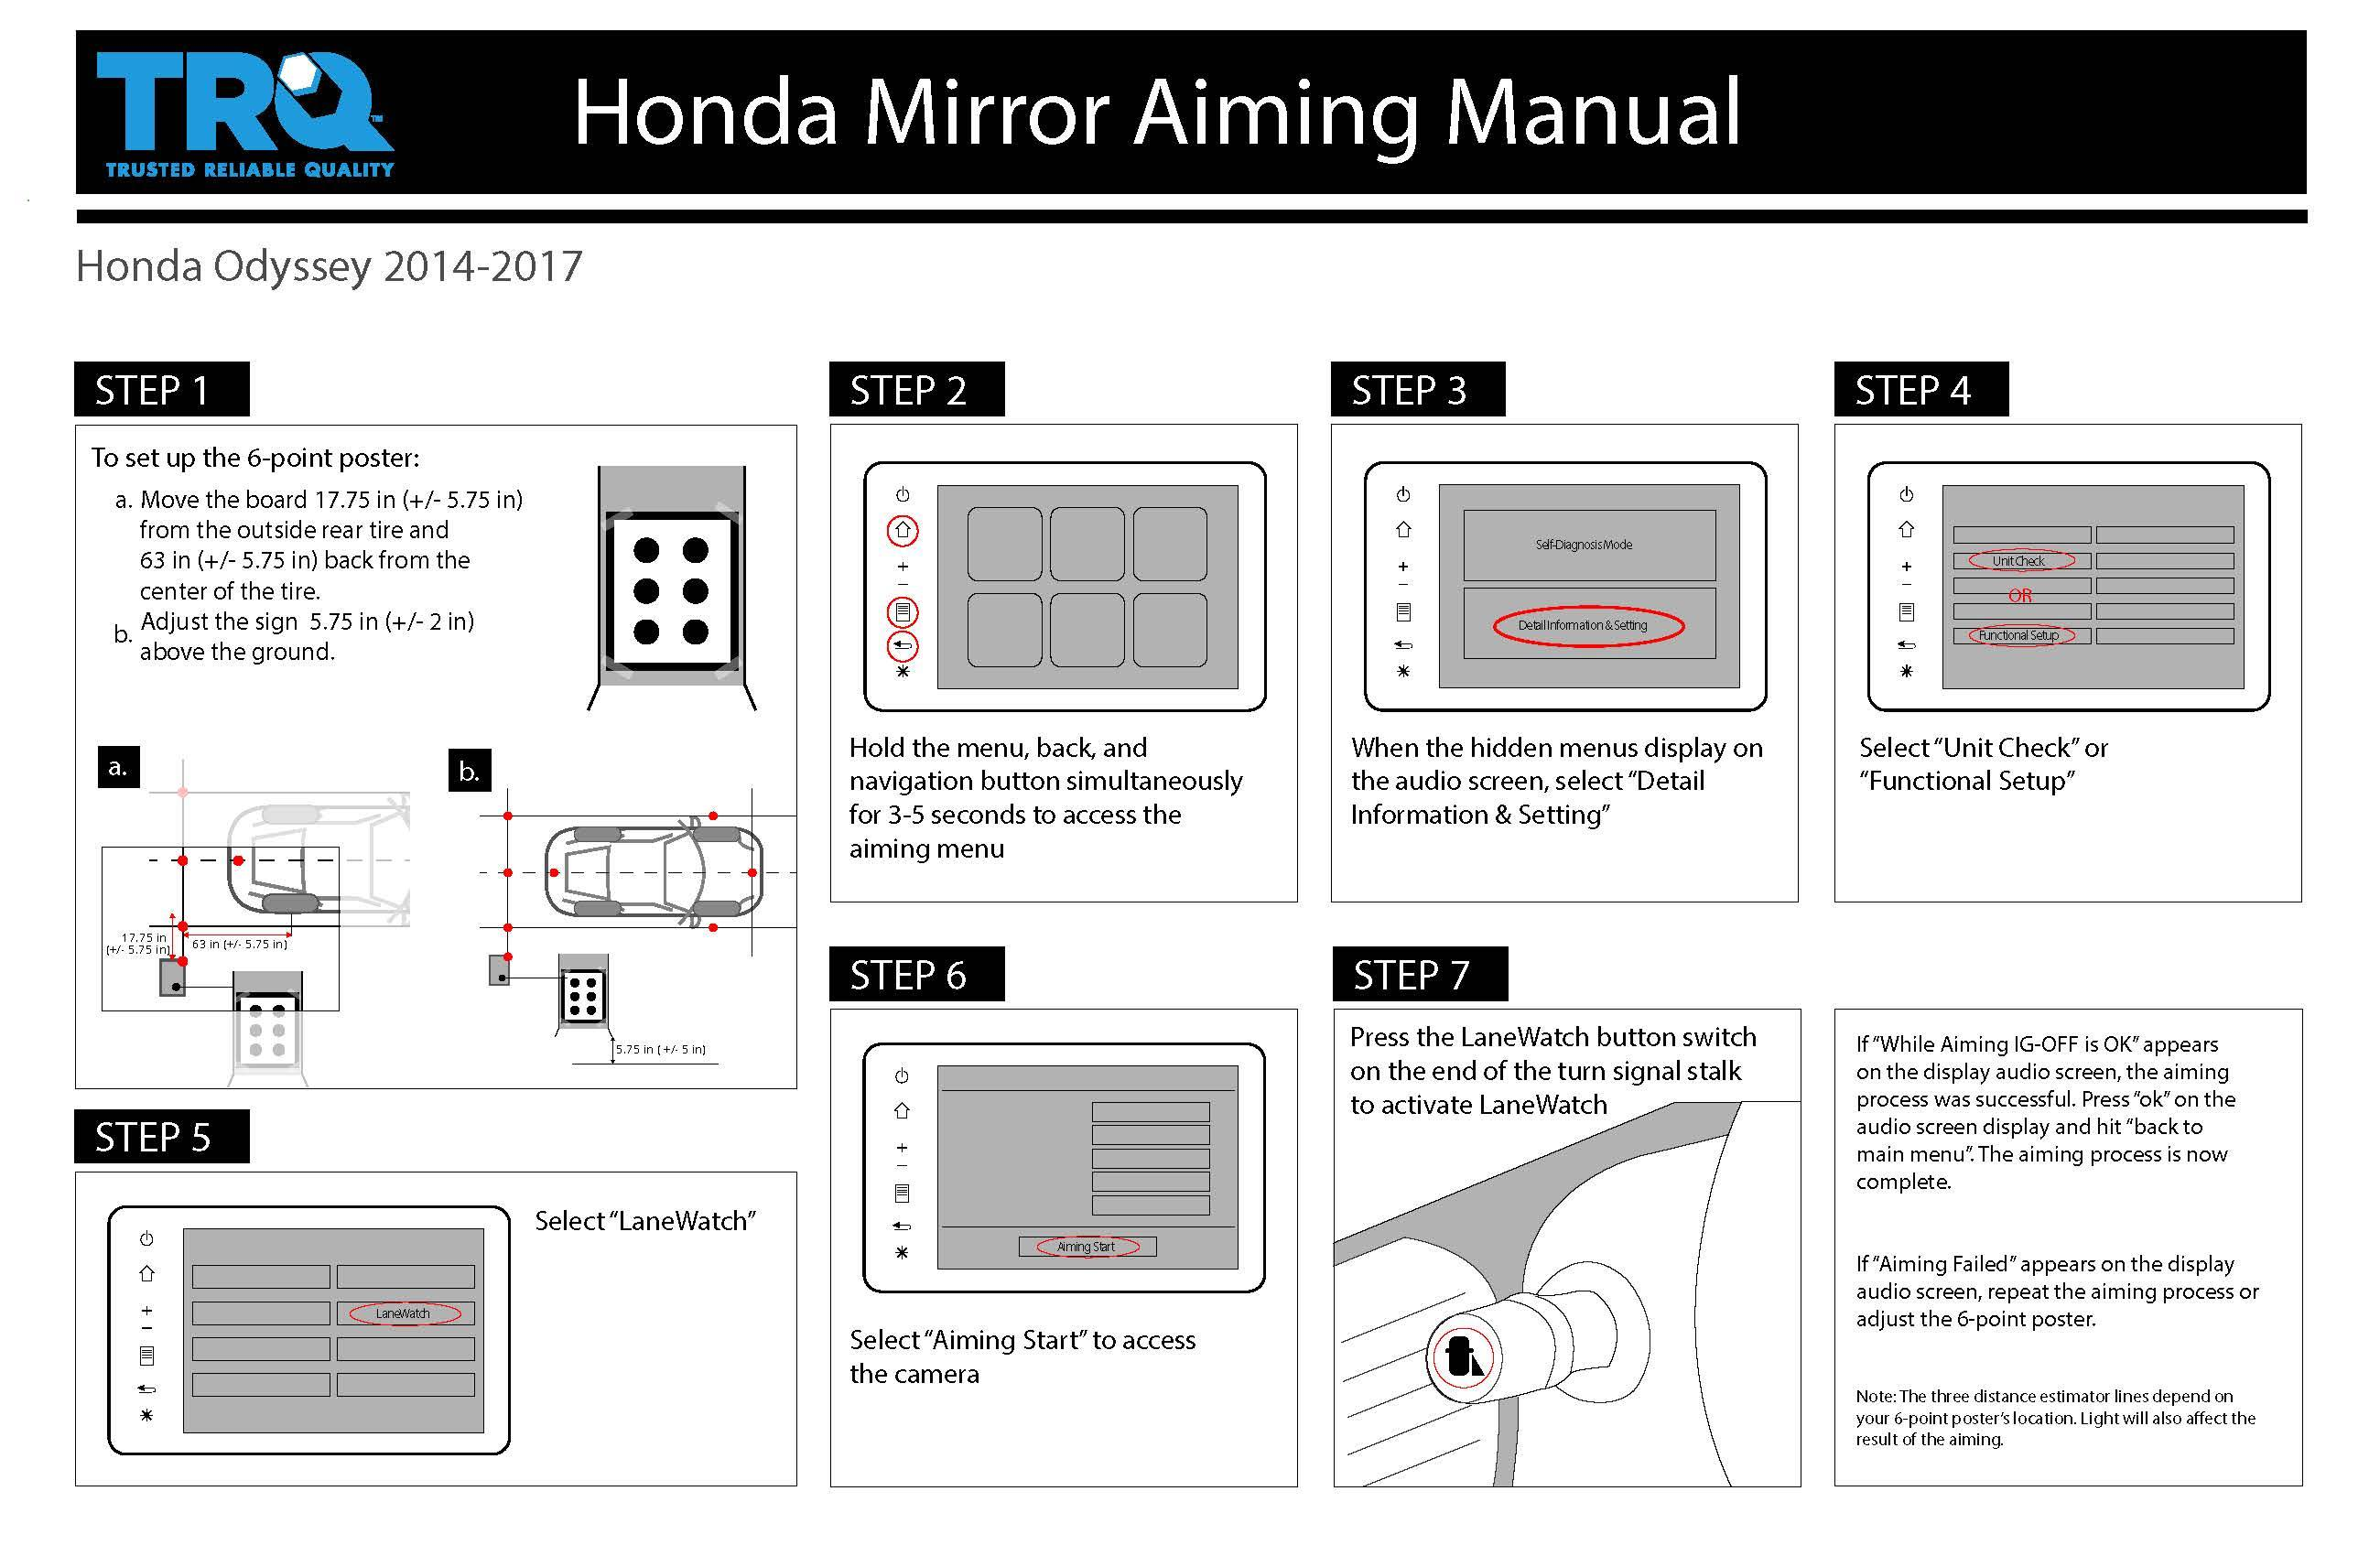 Honda mirror aiming manual for 2014-2017 Honda Odyssey from TRQ.